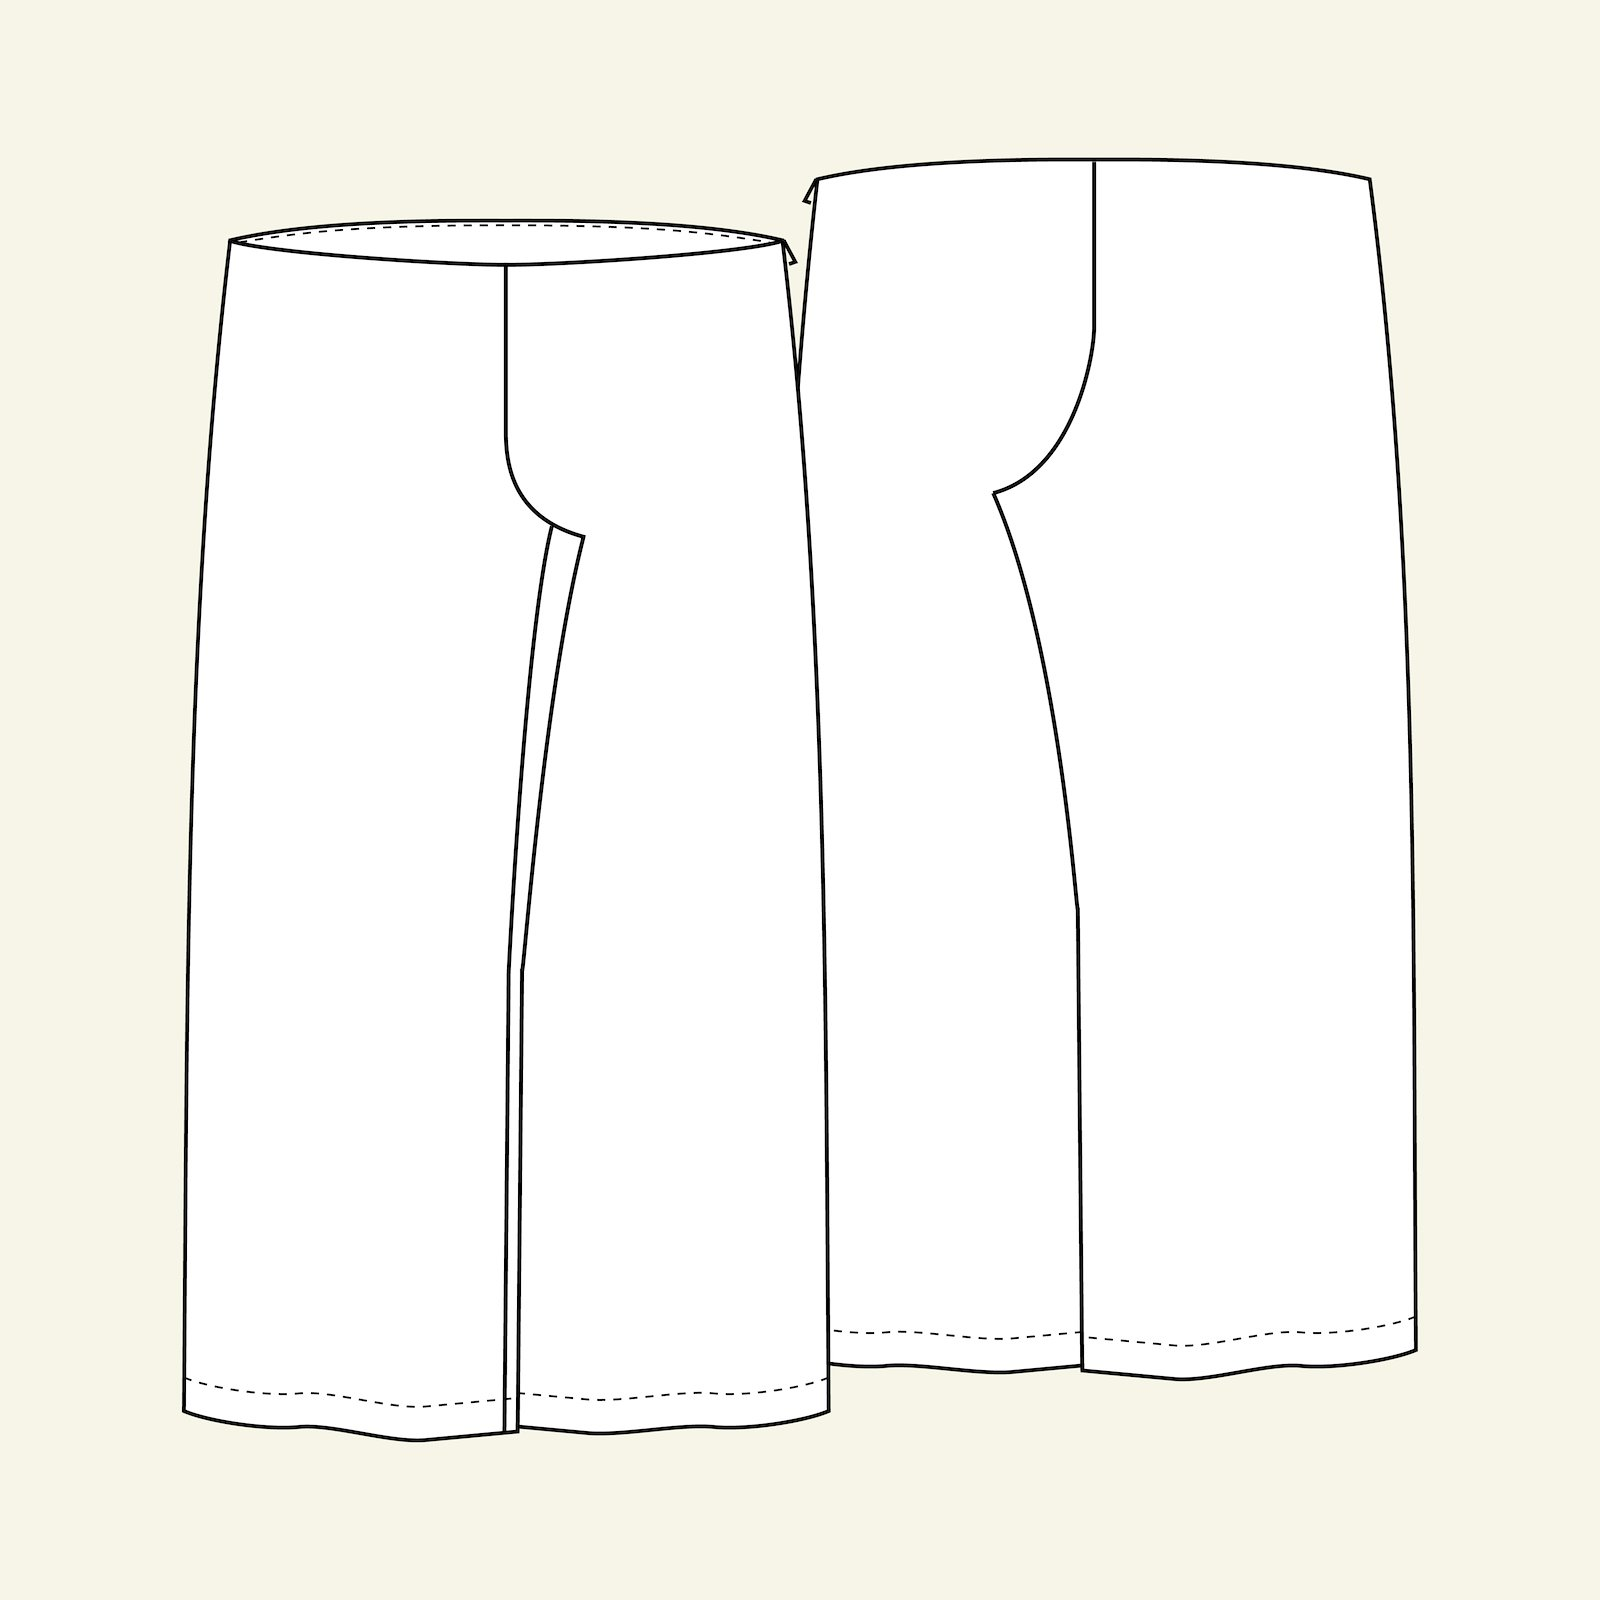 Boot cut trousers, 58/30 p70005_pack